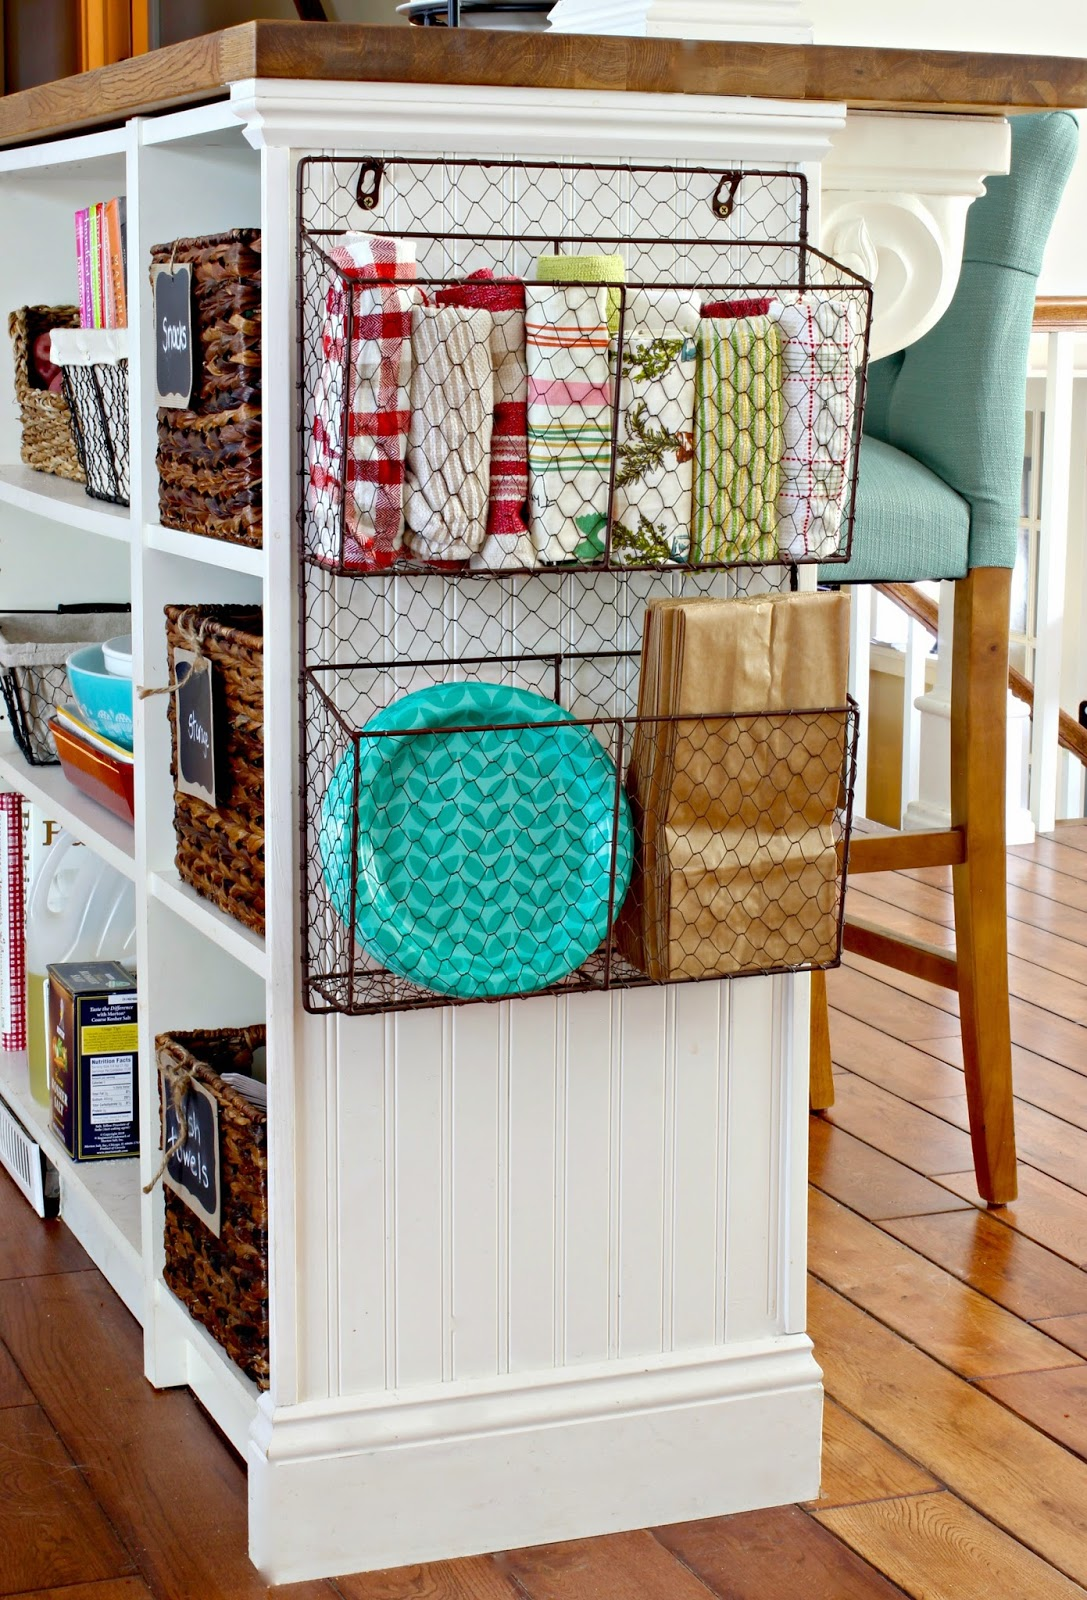 Hanging wire basket for kitchen storage. ll www.goldenboysandme.com